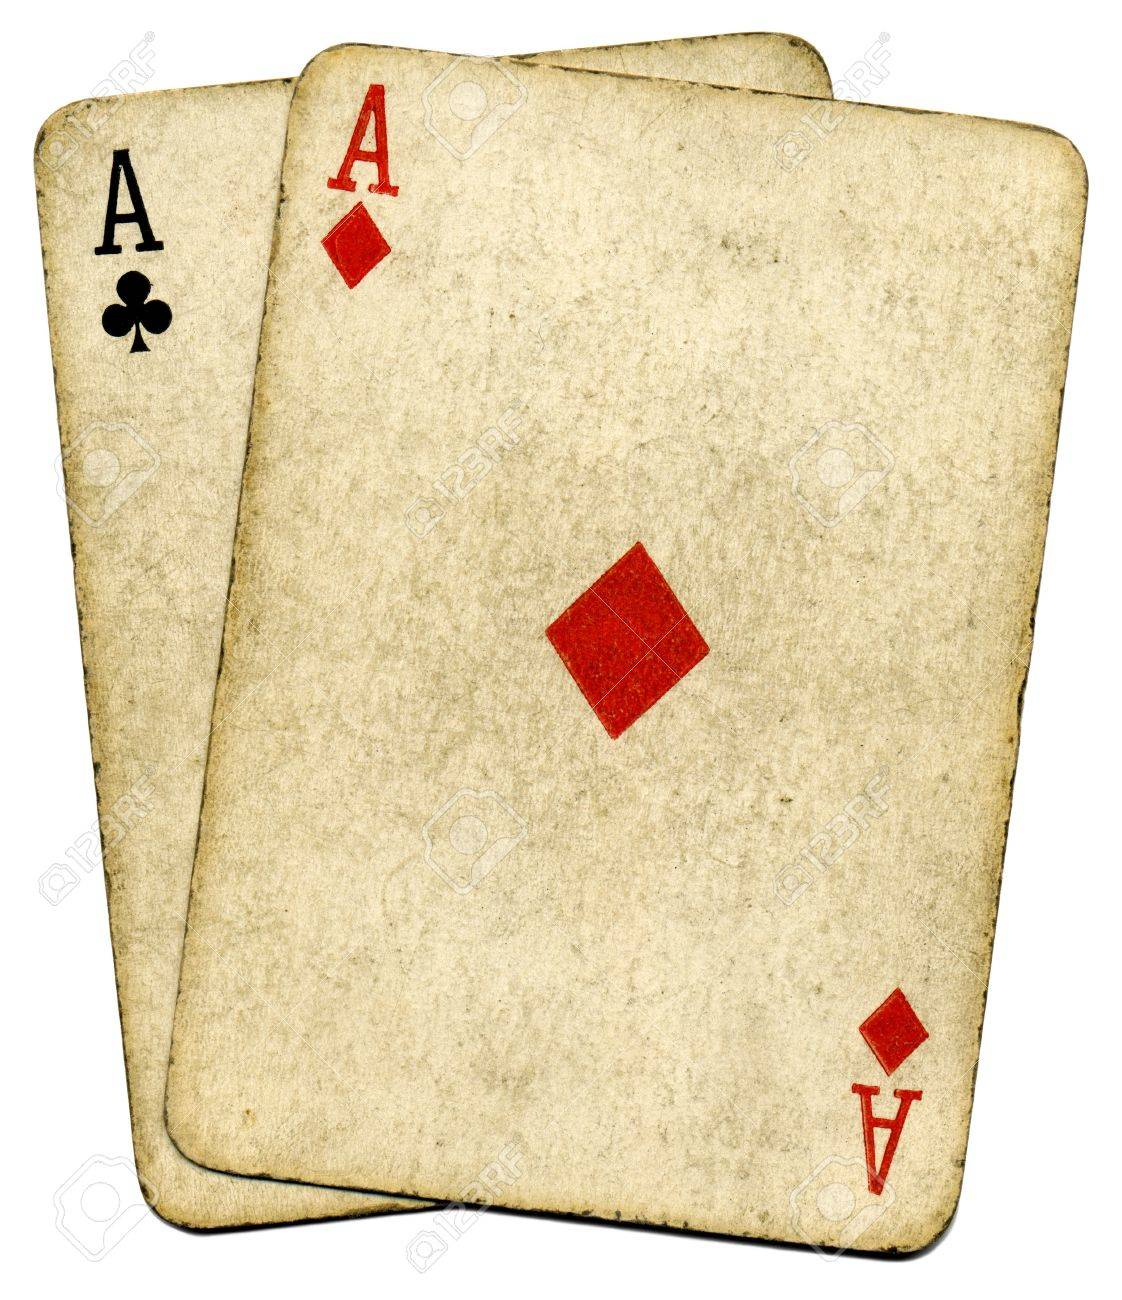 Old vintage dirty aces cards, isolated over white. Stock Photo - 3453506